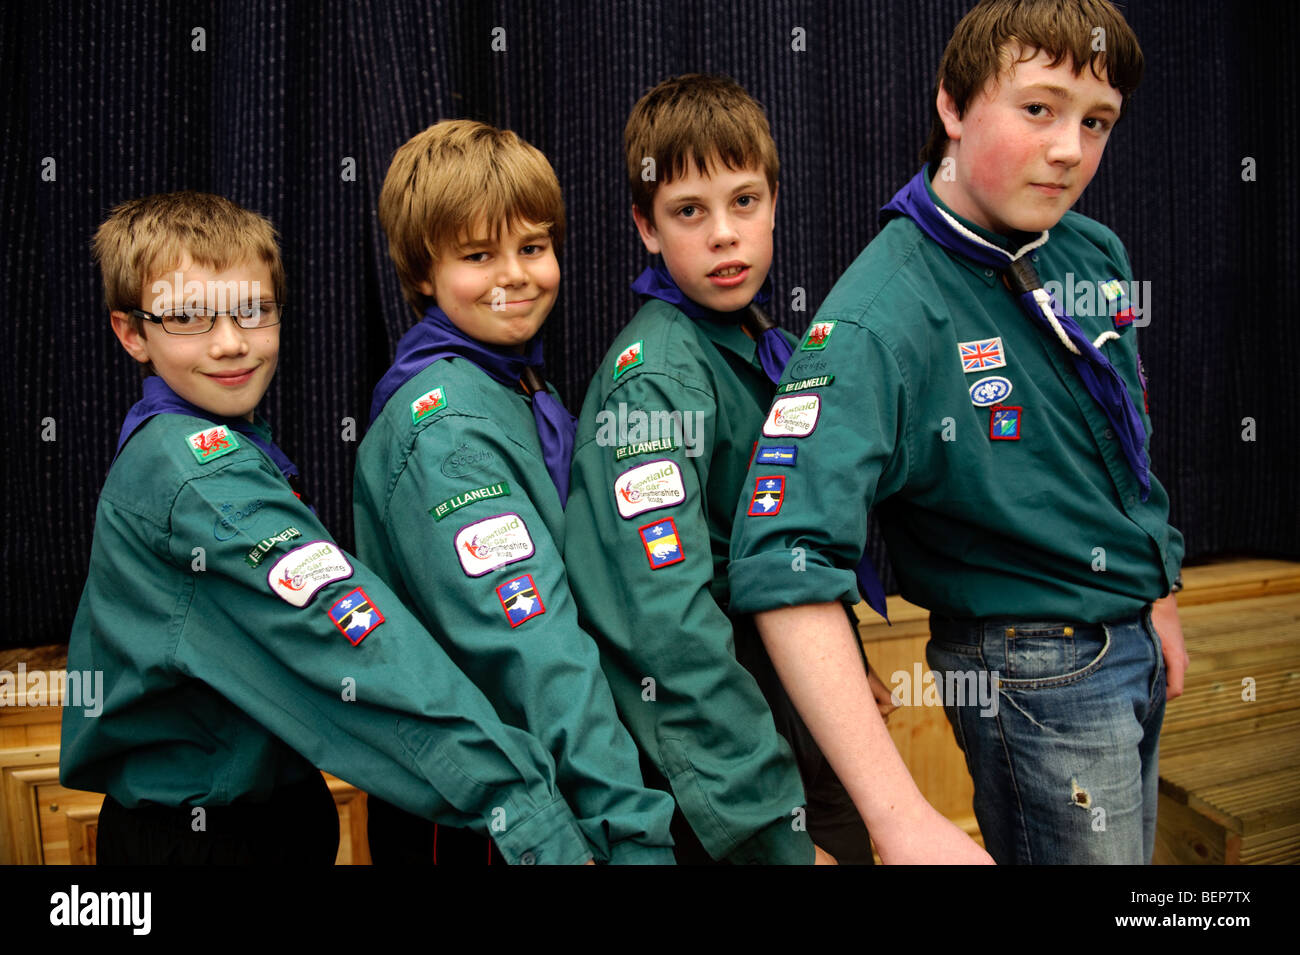 Four young First Llanelli Boy Scouts in their clubhouse renovated with money from the Big Lottery Fund. - Stock Image